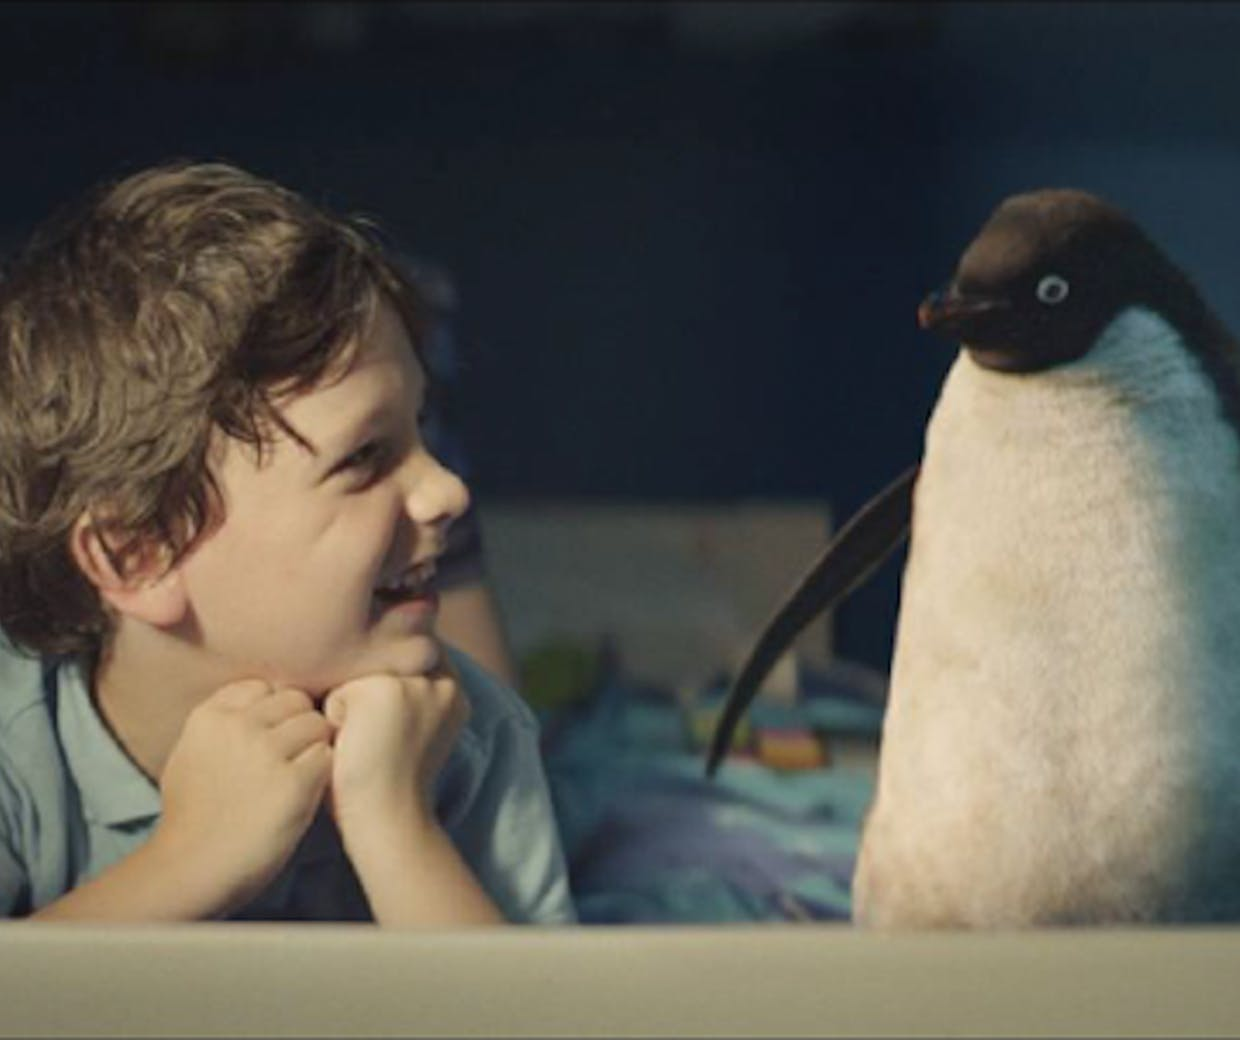 EXCLUSIVE: How The John Lewis Christmas Ad Was Made